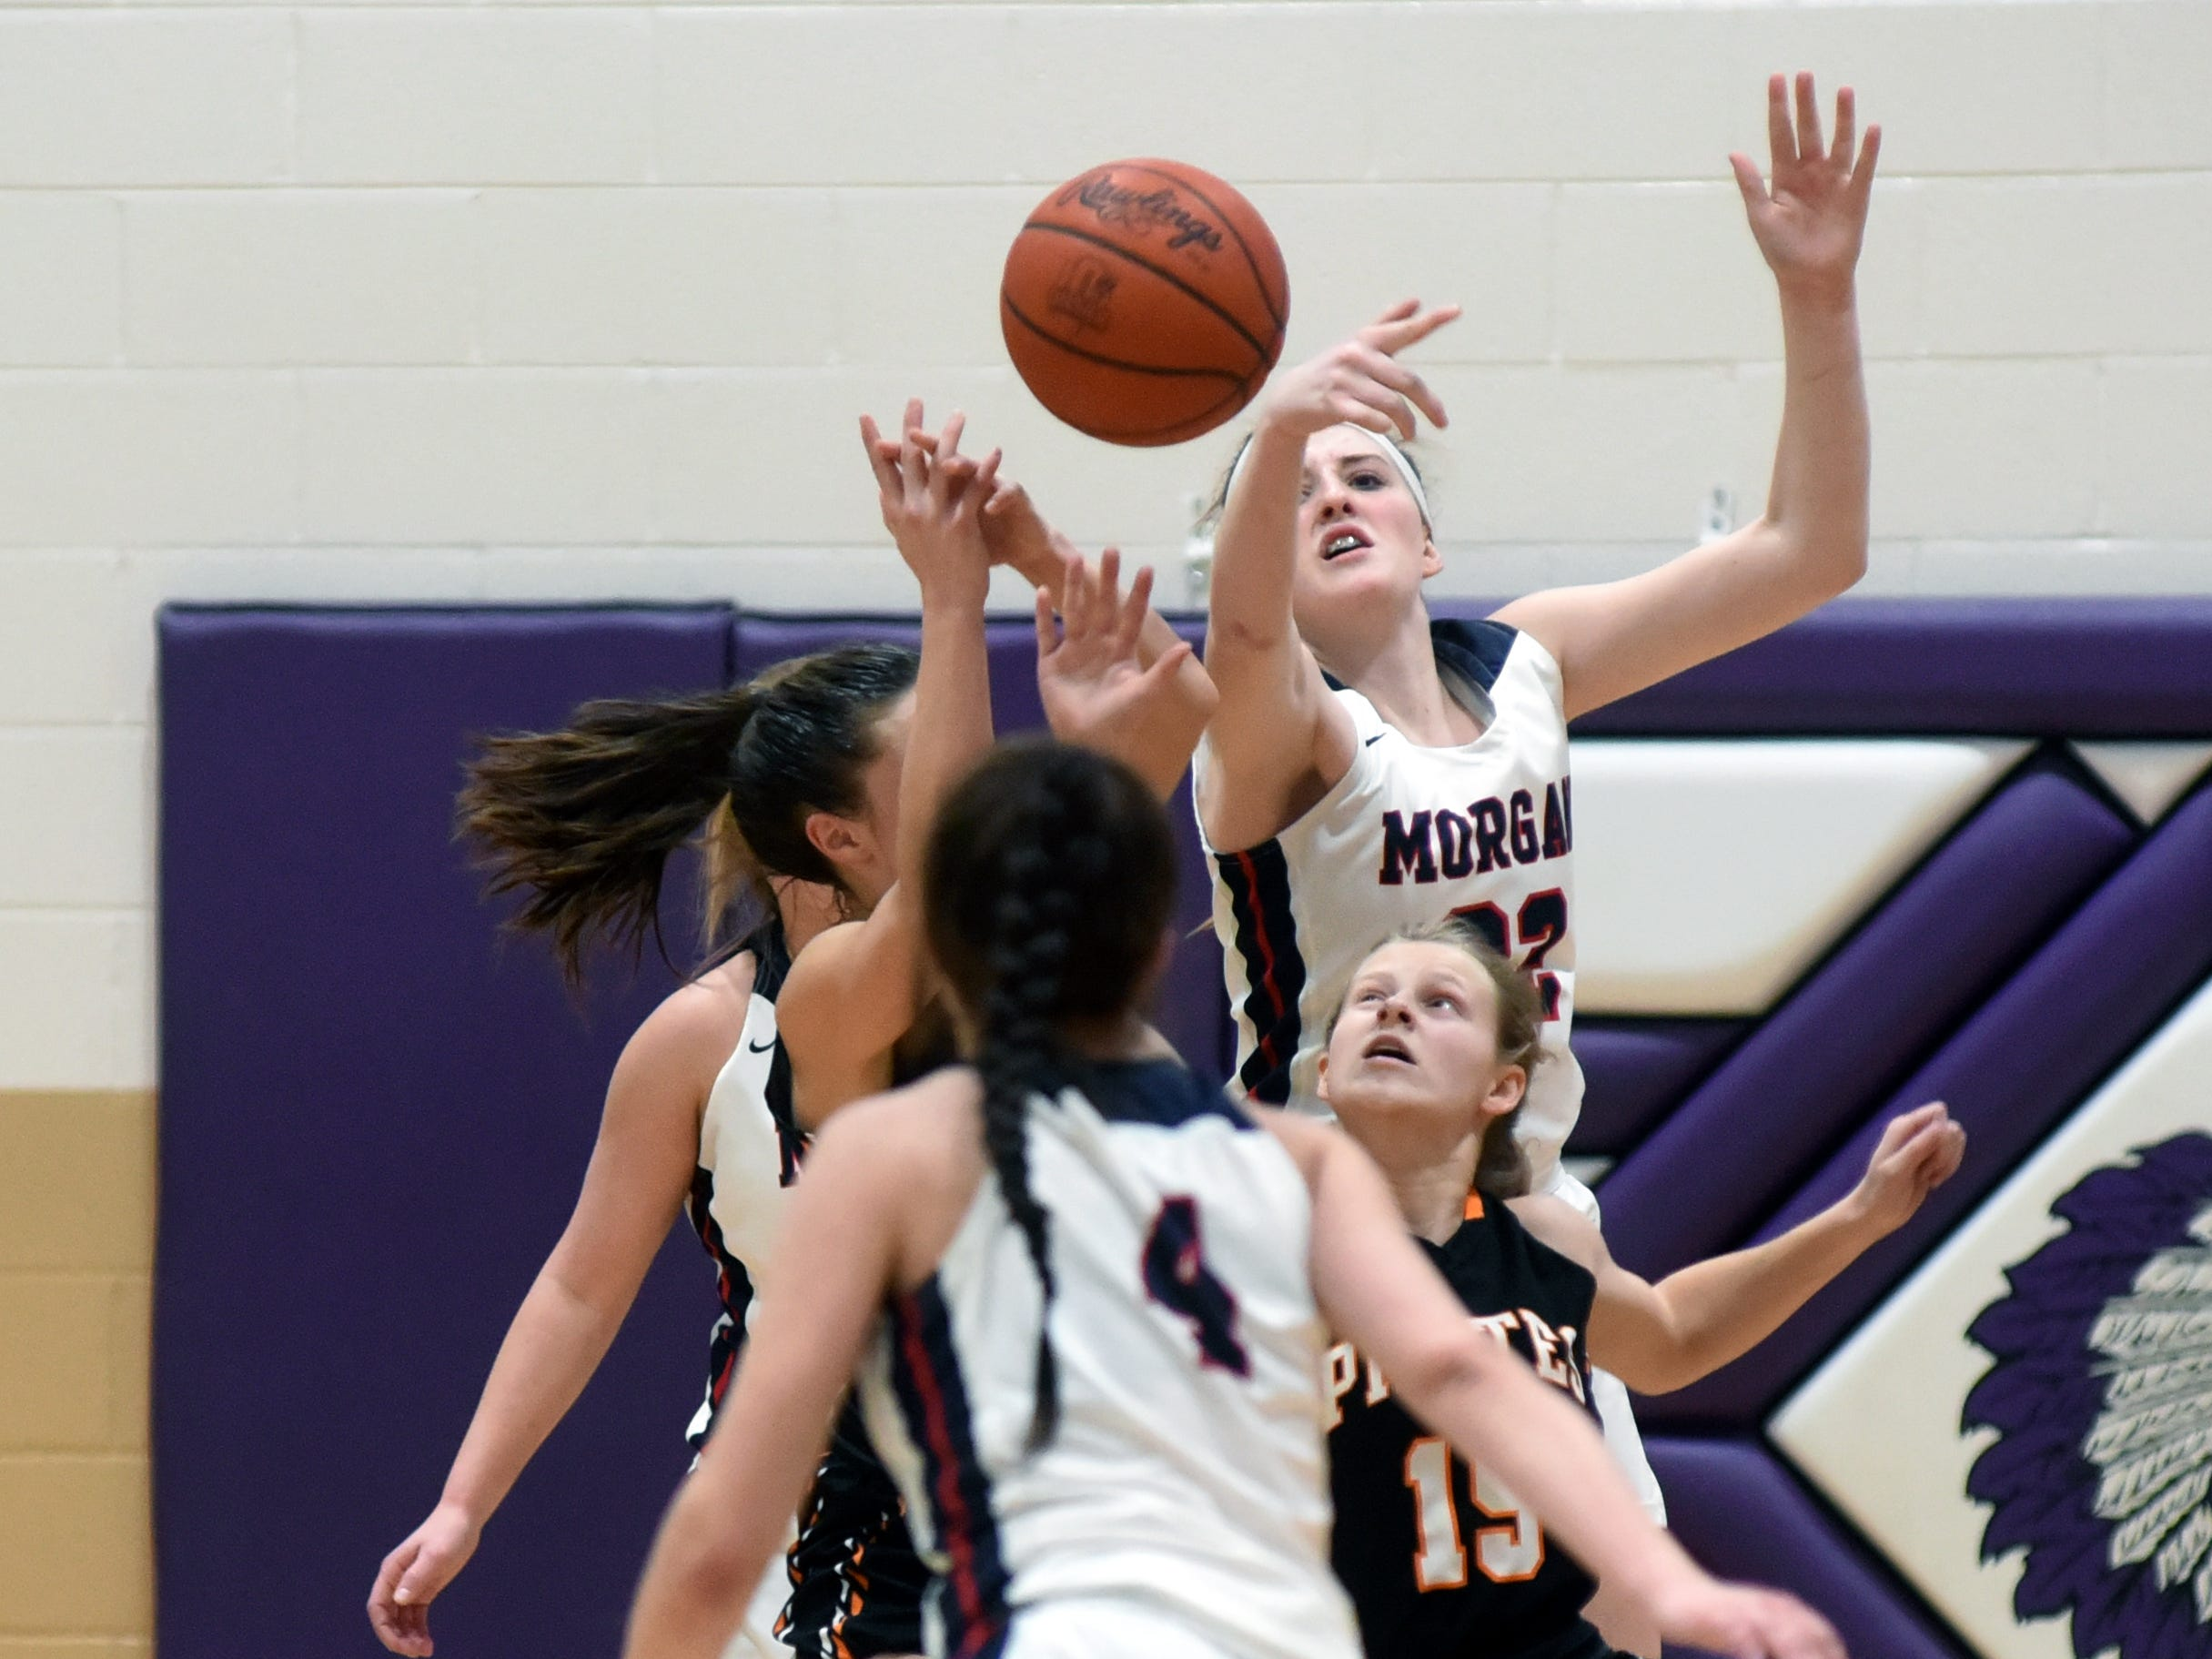 Players fight for a rebound during Morgan's 56-55 loss to Wheelersburg in a Division III regional semifinal at Logan.